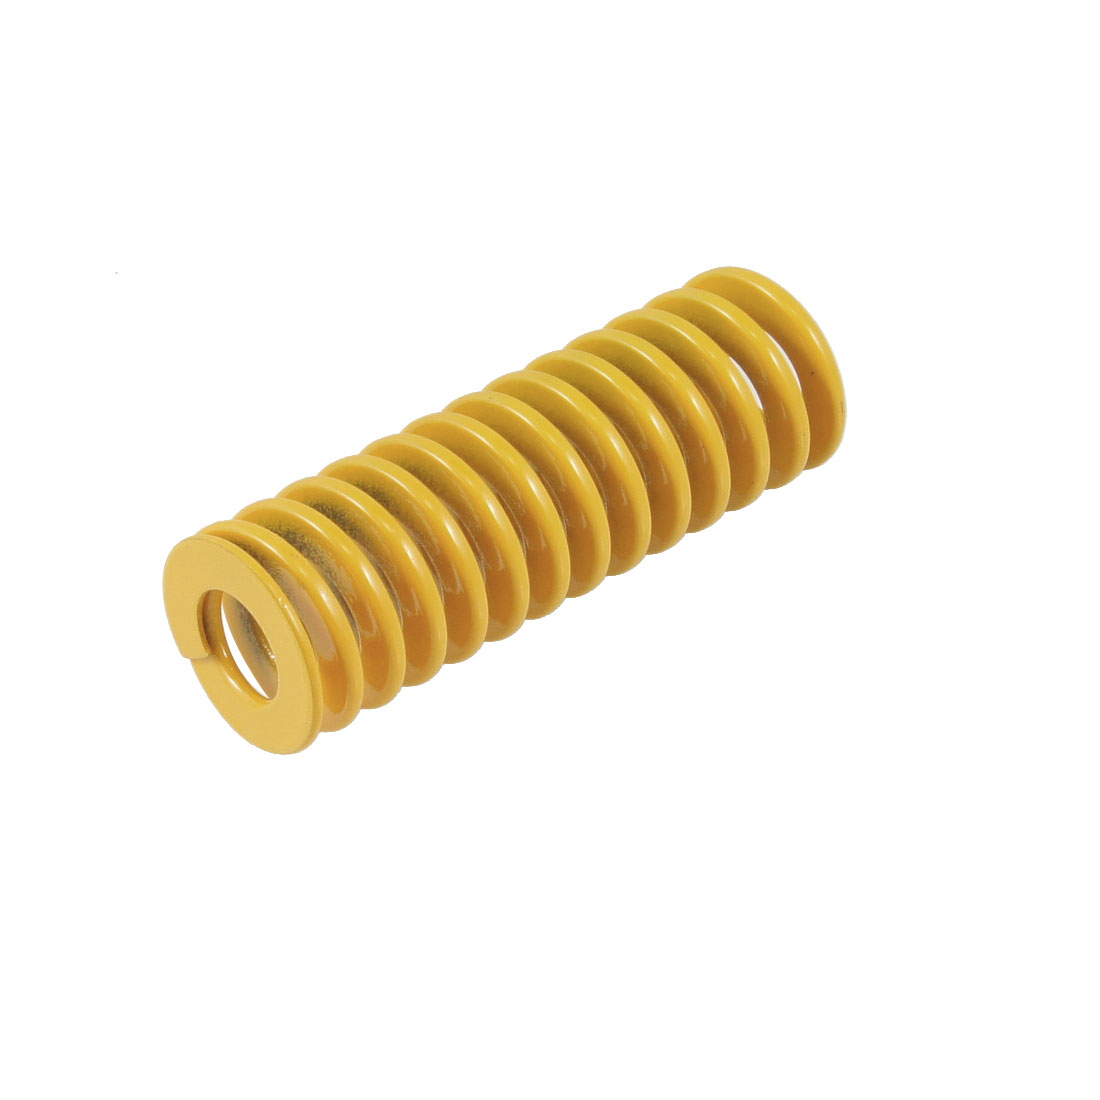 25mm x 13mm x 70mm Spiral Metal Stamping Compression Die Spring